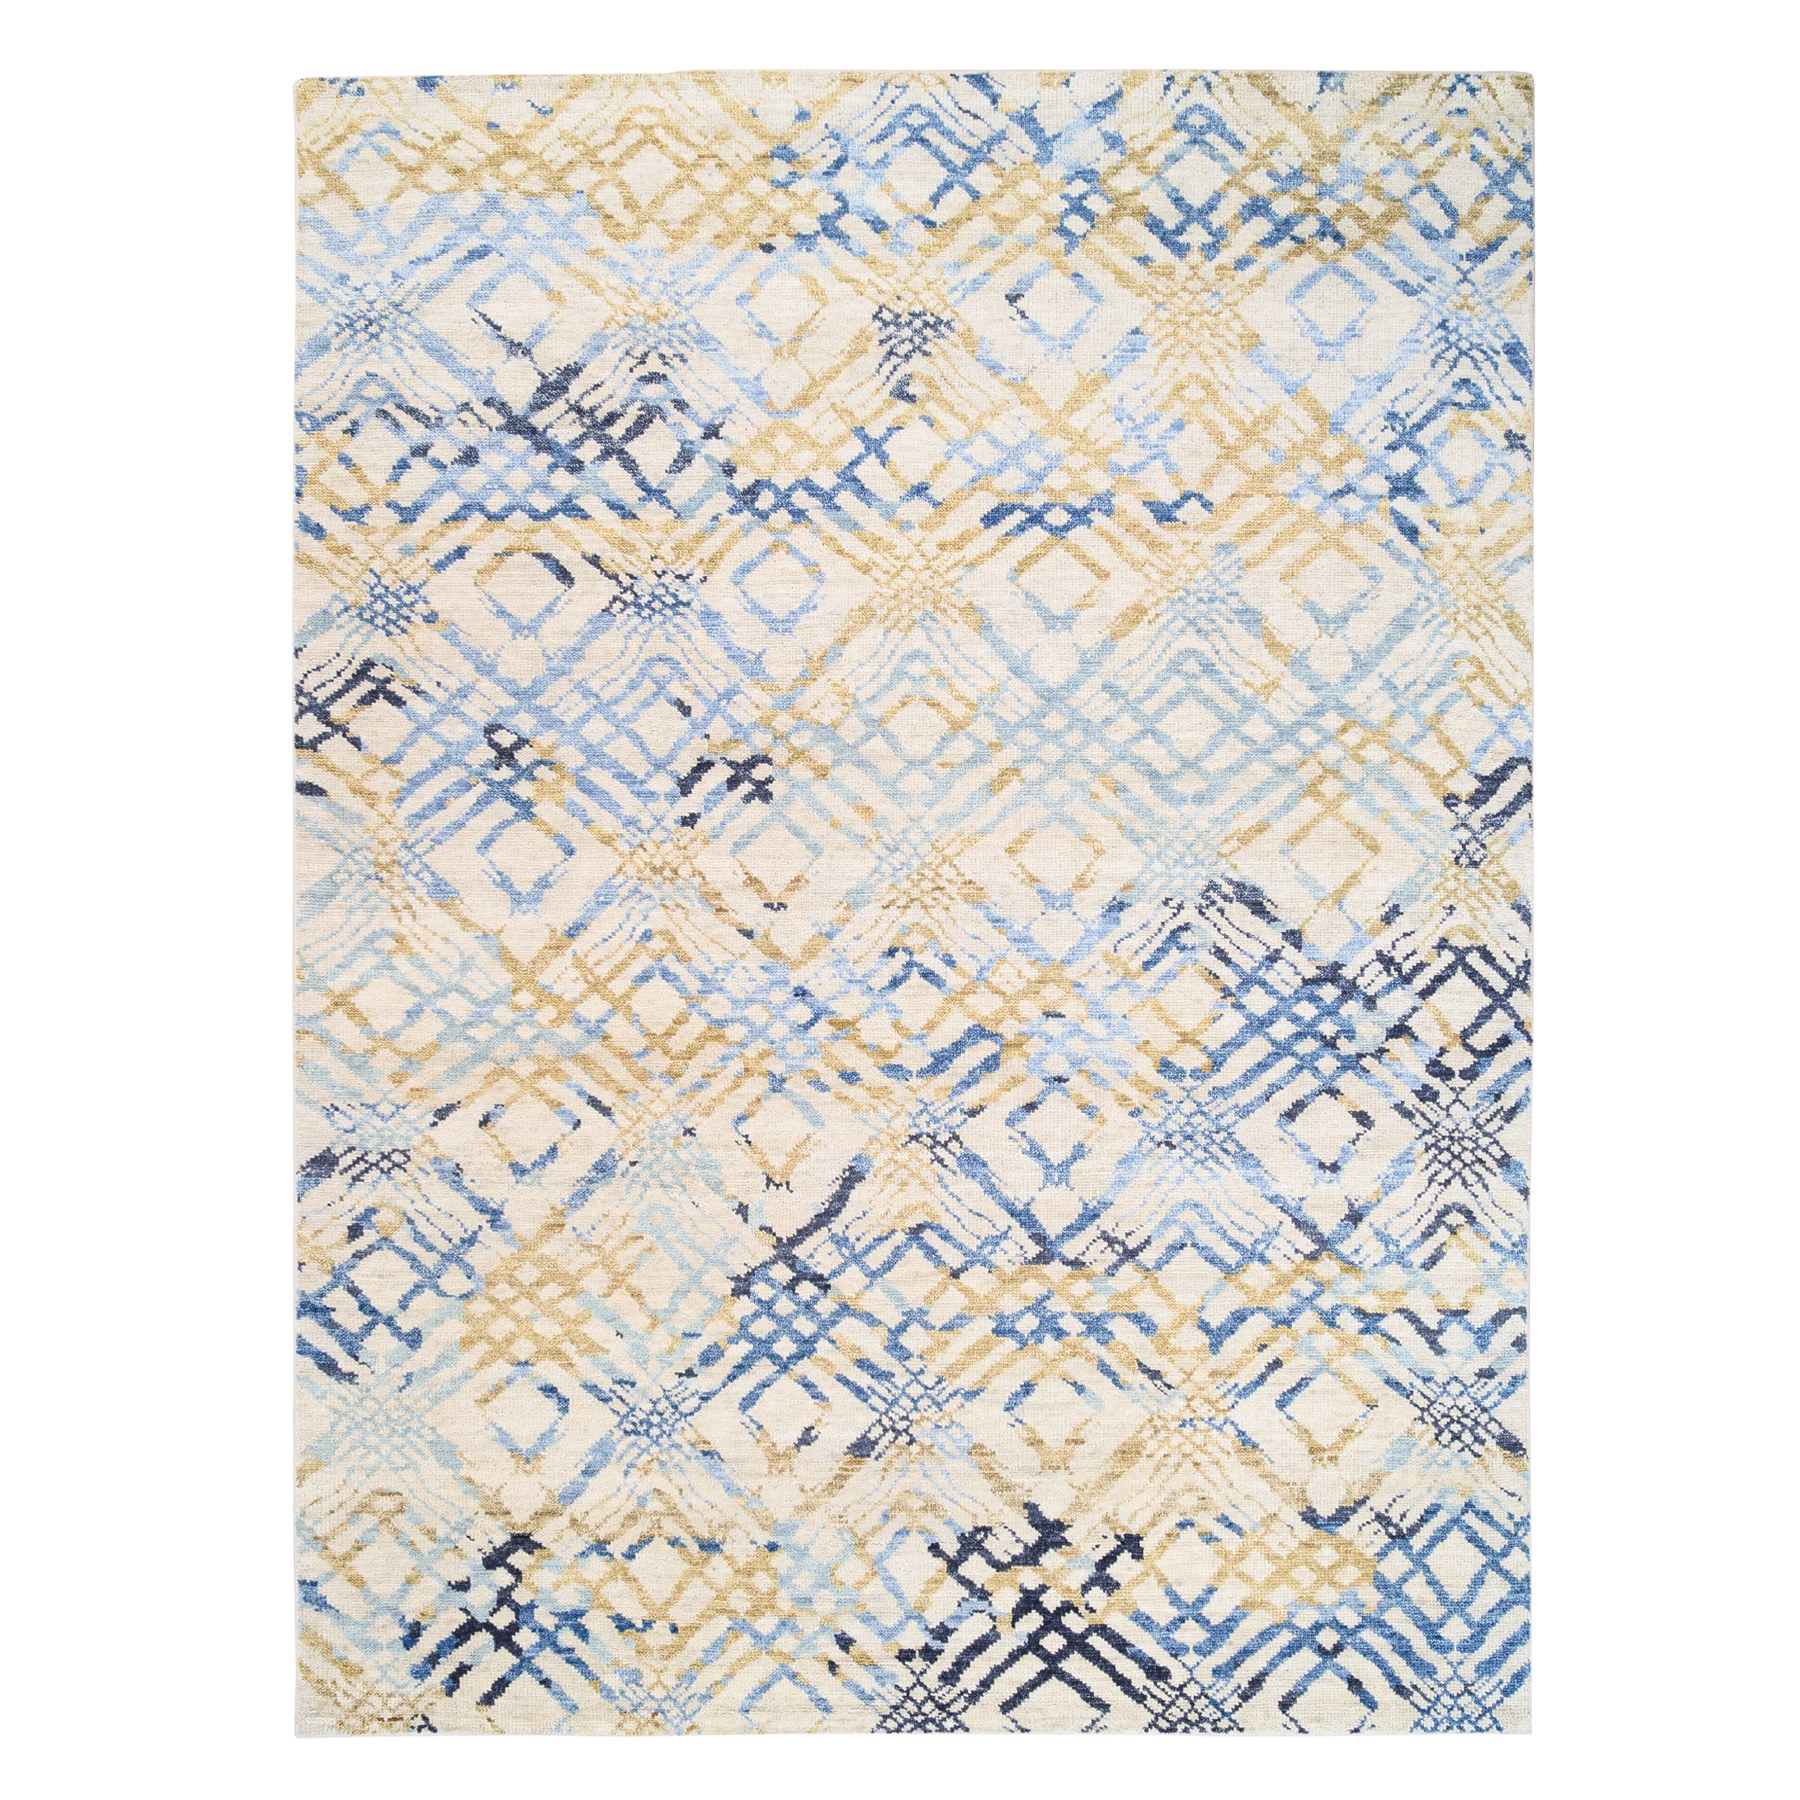 9'x12' Yellow and Ivory Supple Collection Modern Oceanic Square Design Pure Wool Hand Knotted Oriental Rug